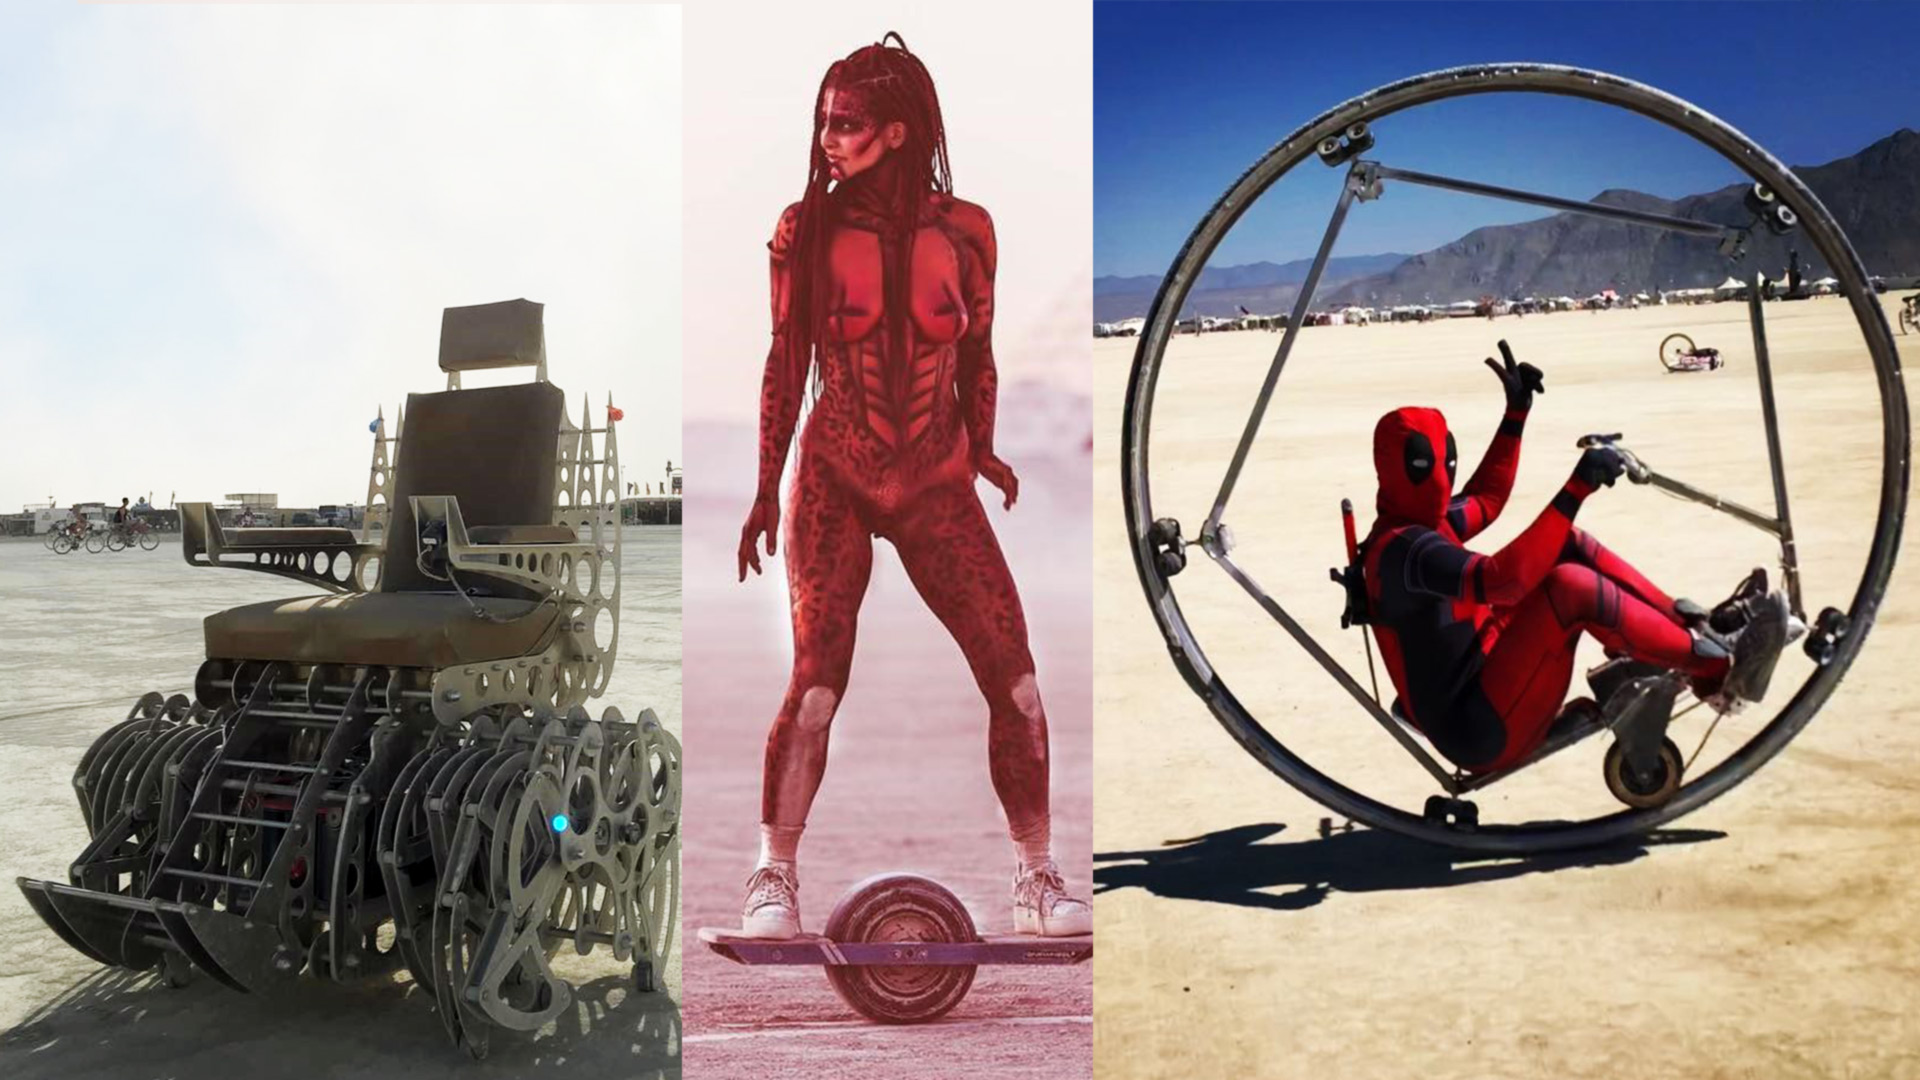 Burning Man Electric Vehicles And Their Owners Are Crazy Creative!